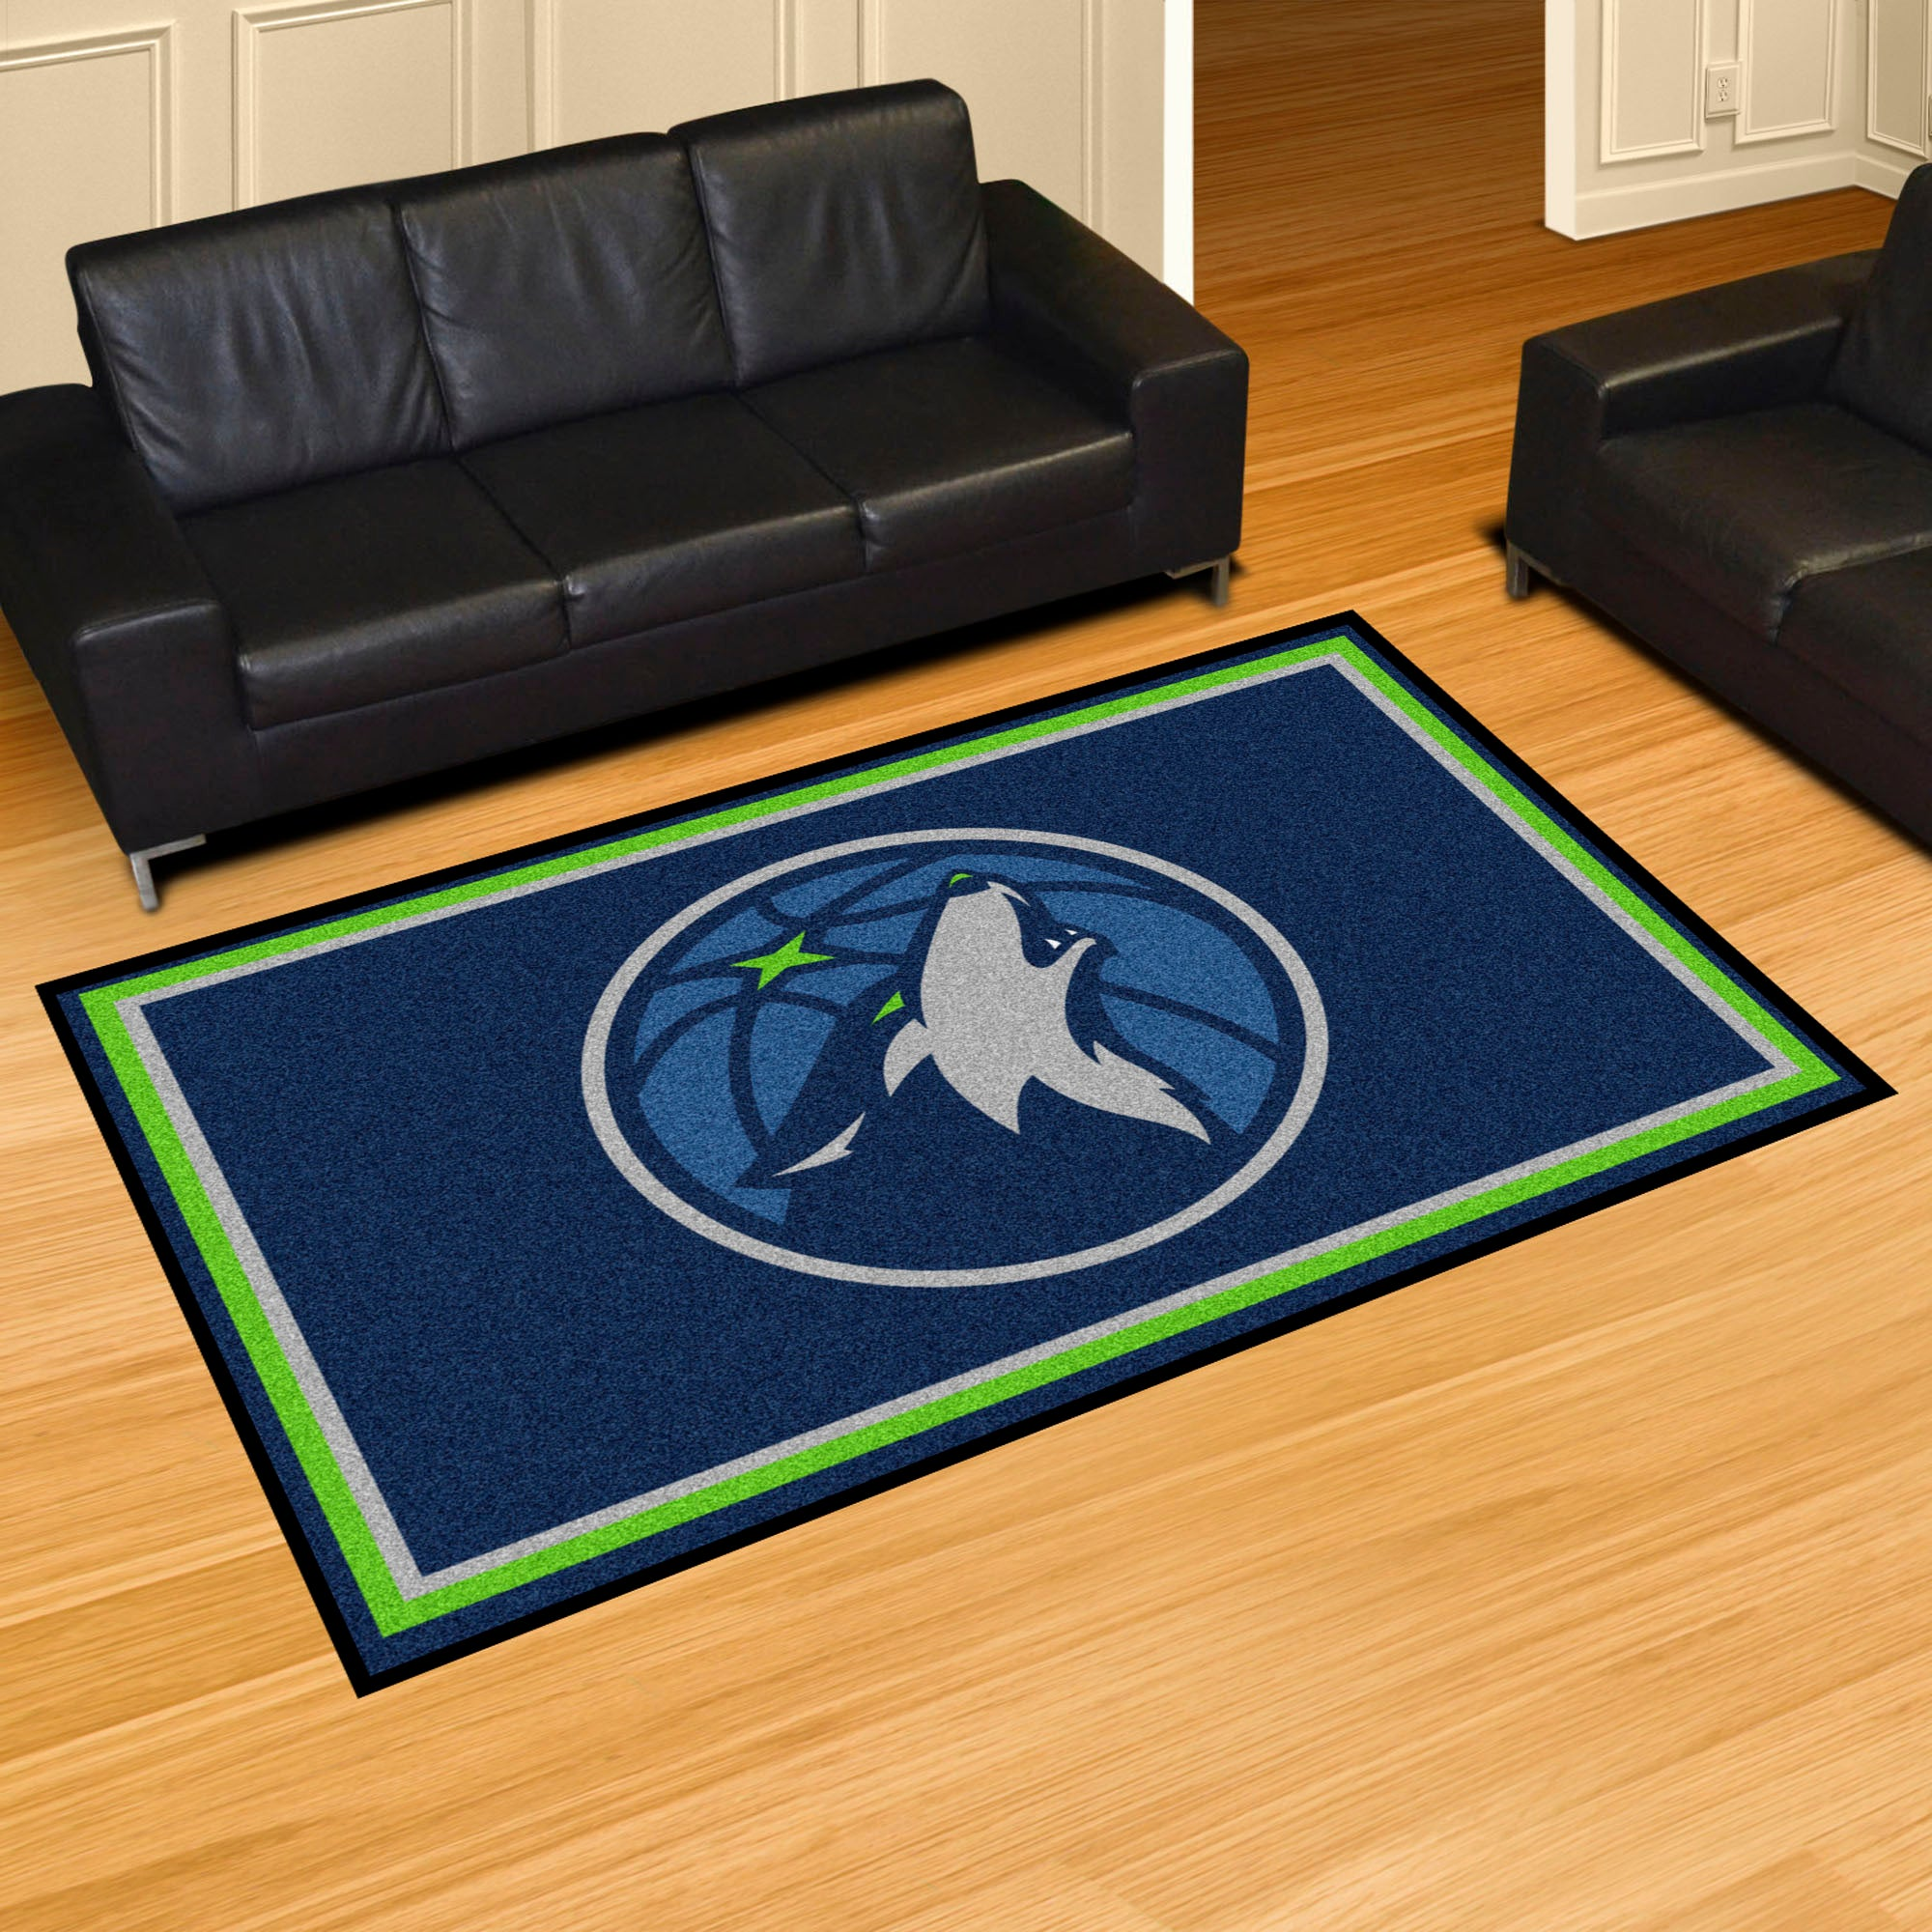 Minnesota Timberwolves Rug  NBA Area Rug - Fan Rugs